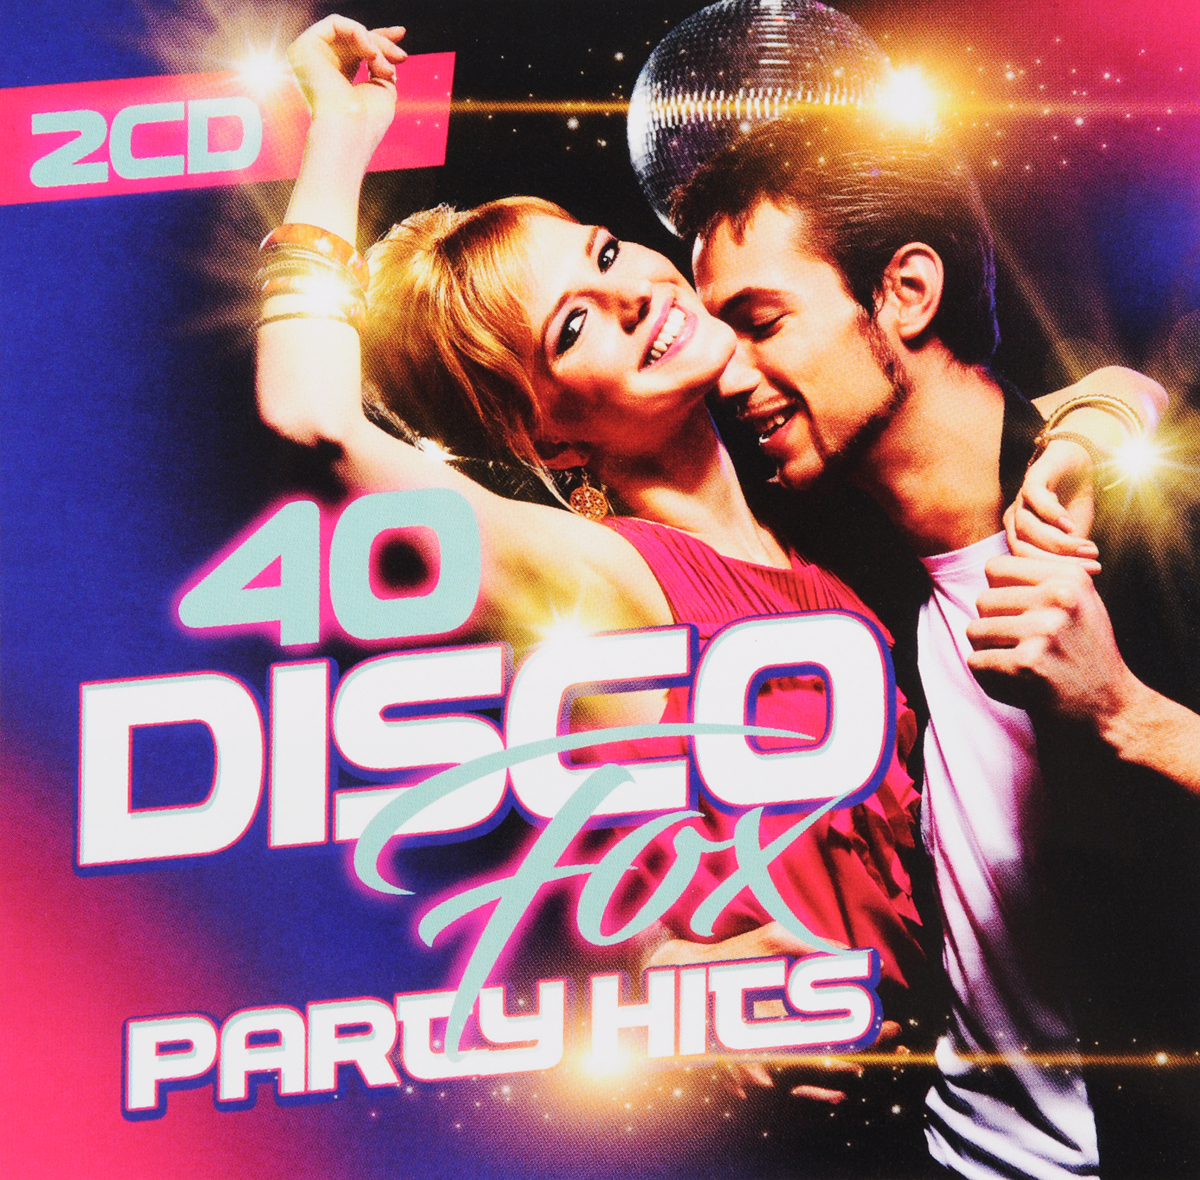 40 Disco Fox Party Hits (2 CD) массимо фарао piano world hits 2 cd